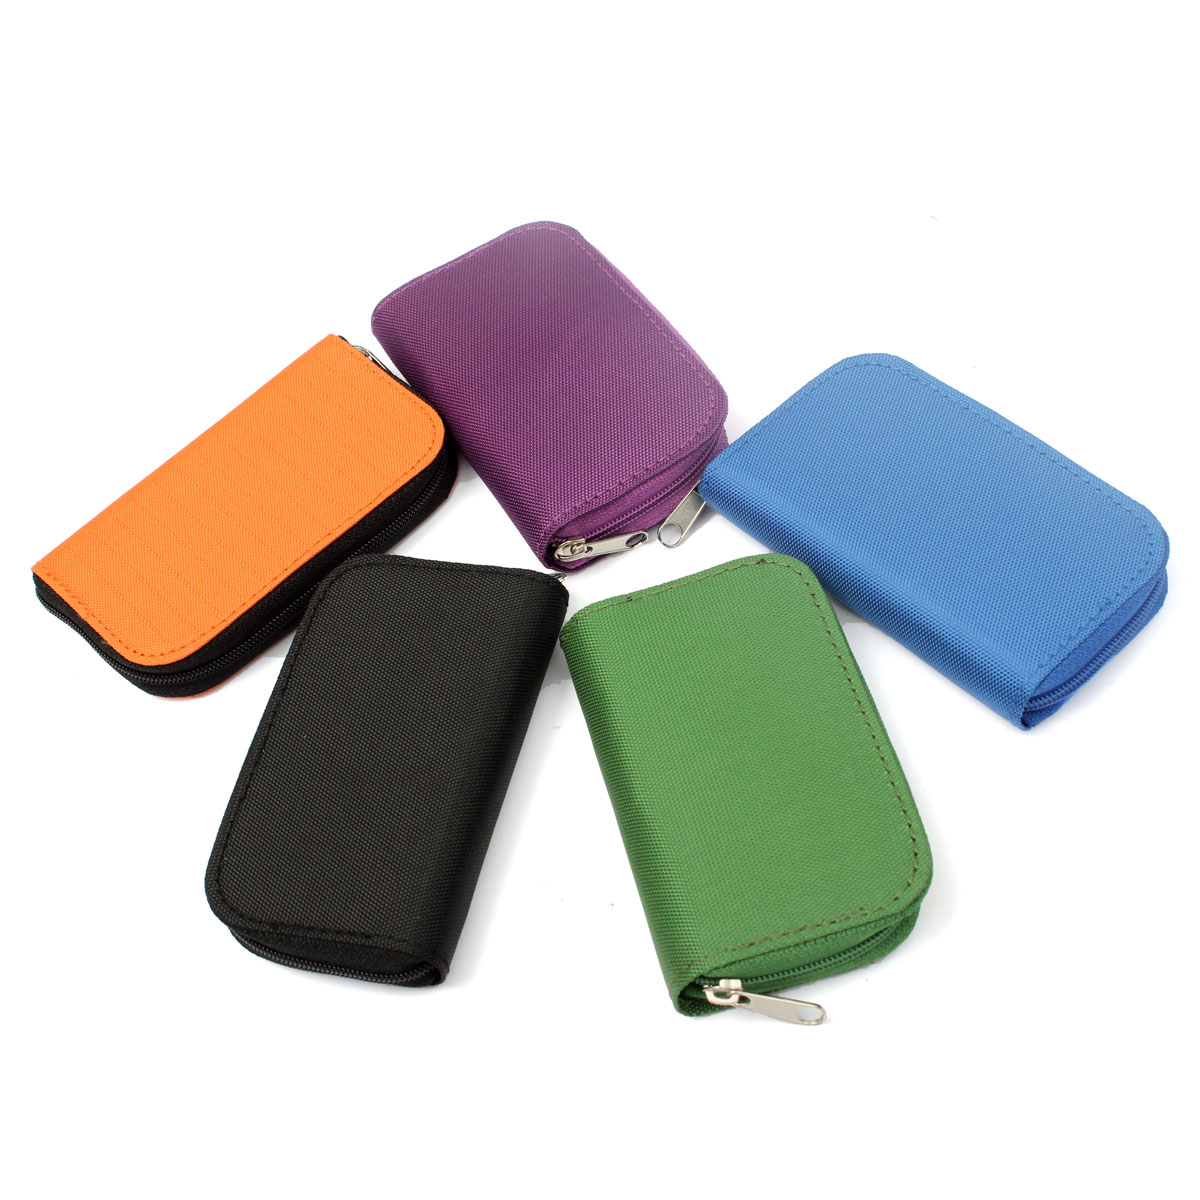 22pcs CF/SD/SDHC/MS/DS Micro Memory Card Case Storage Pouch Wallet Bag Holder